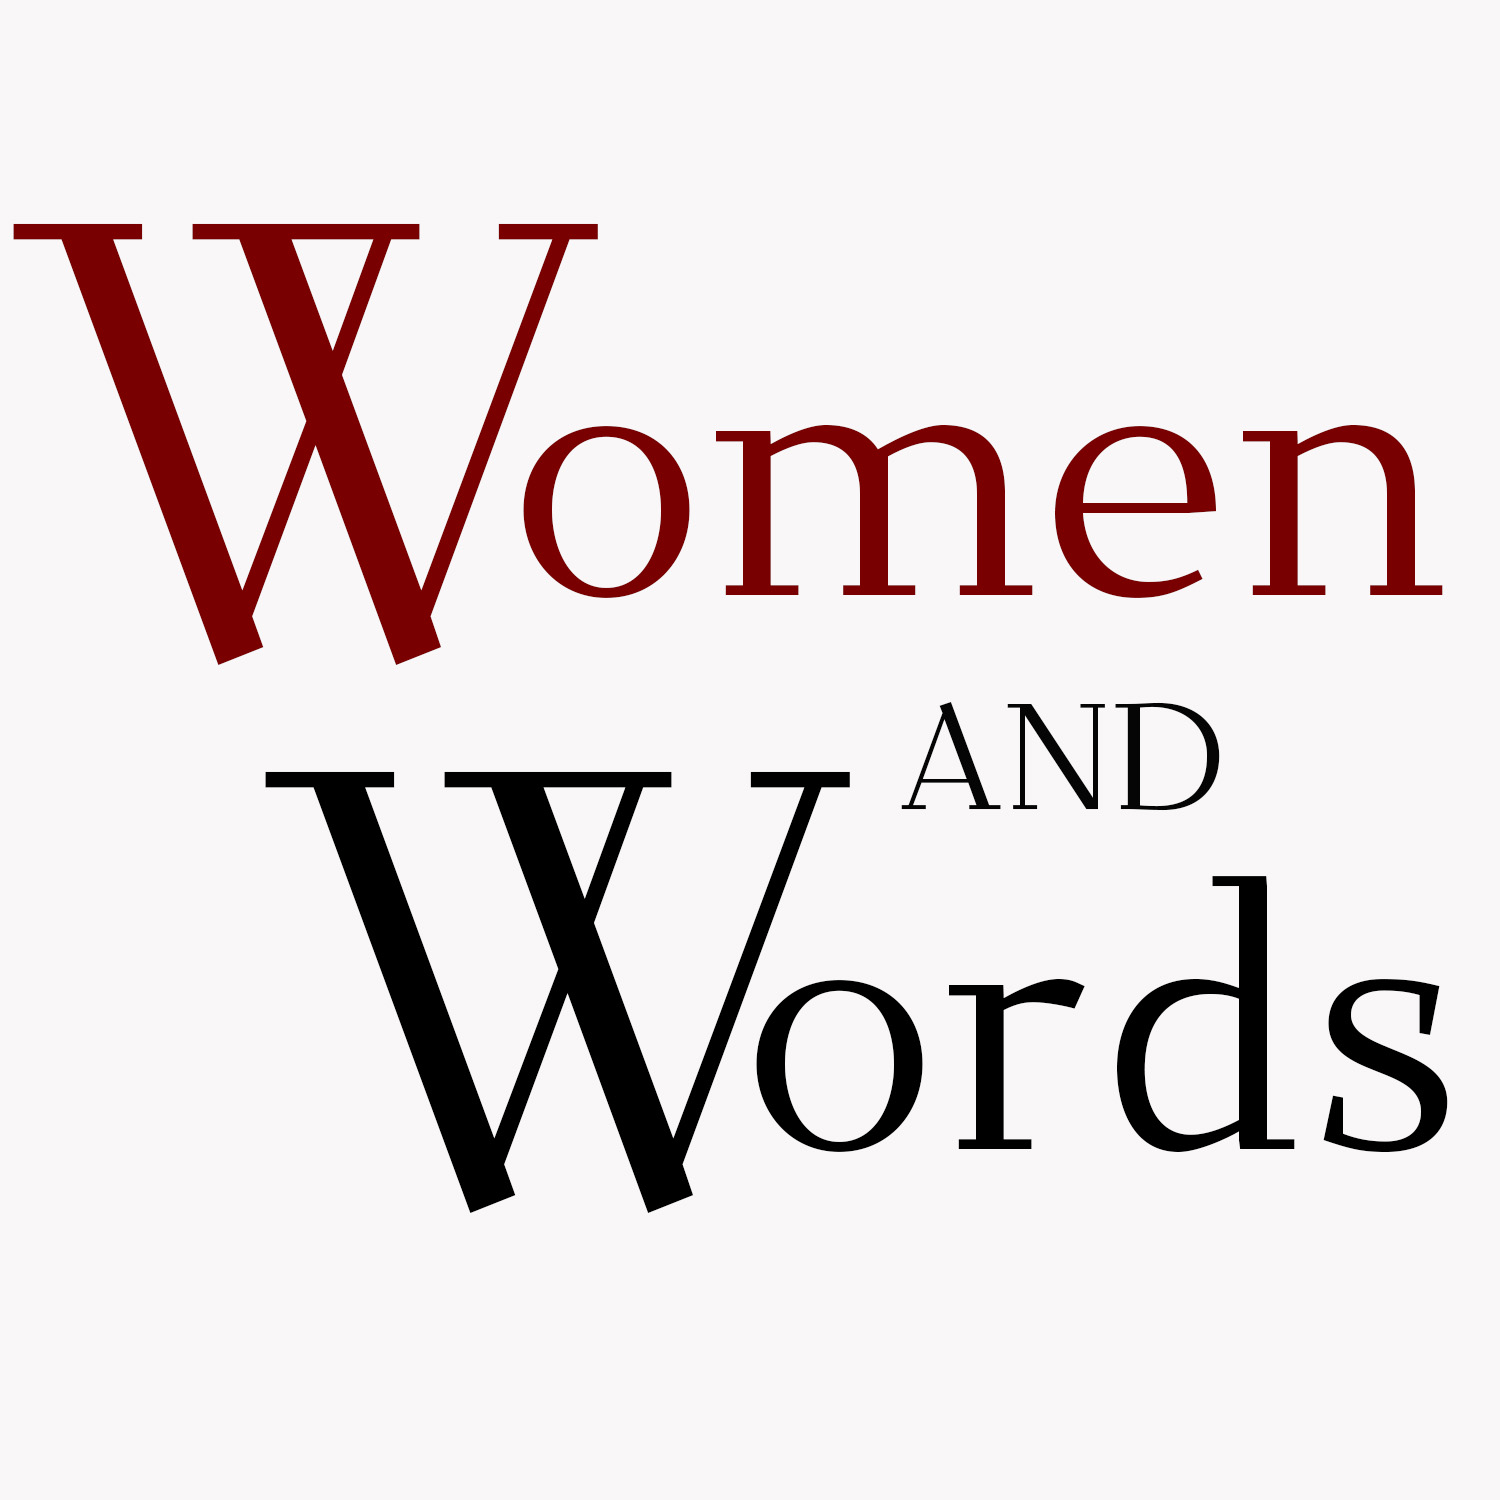 Women and Words